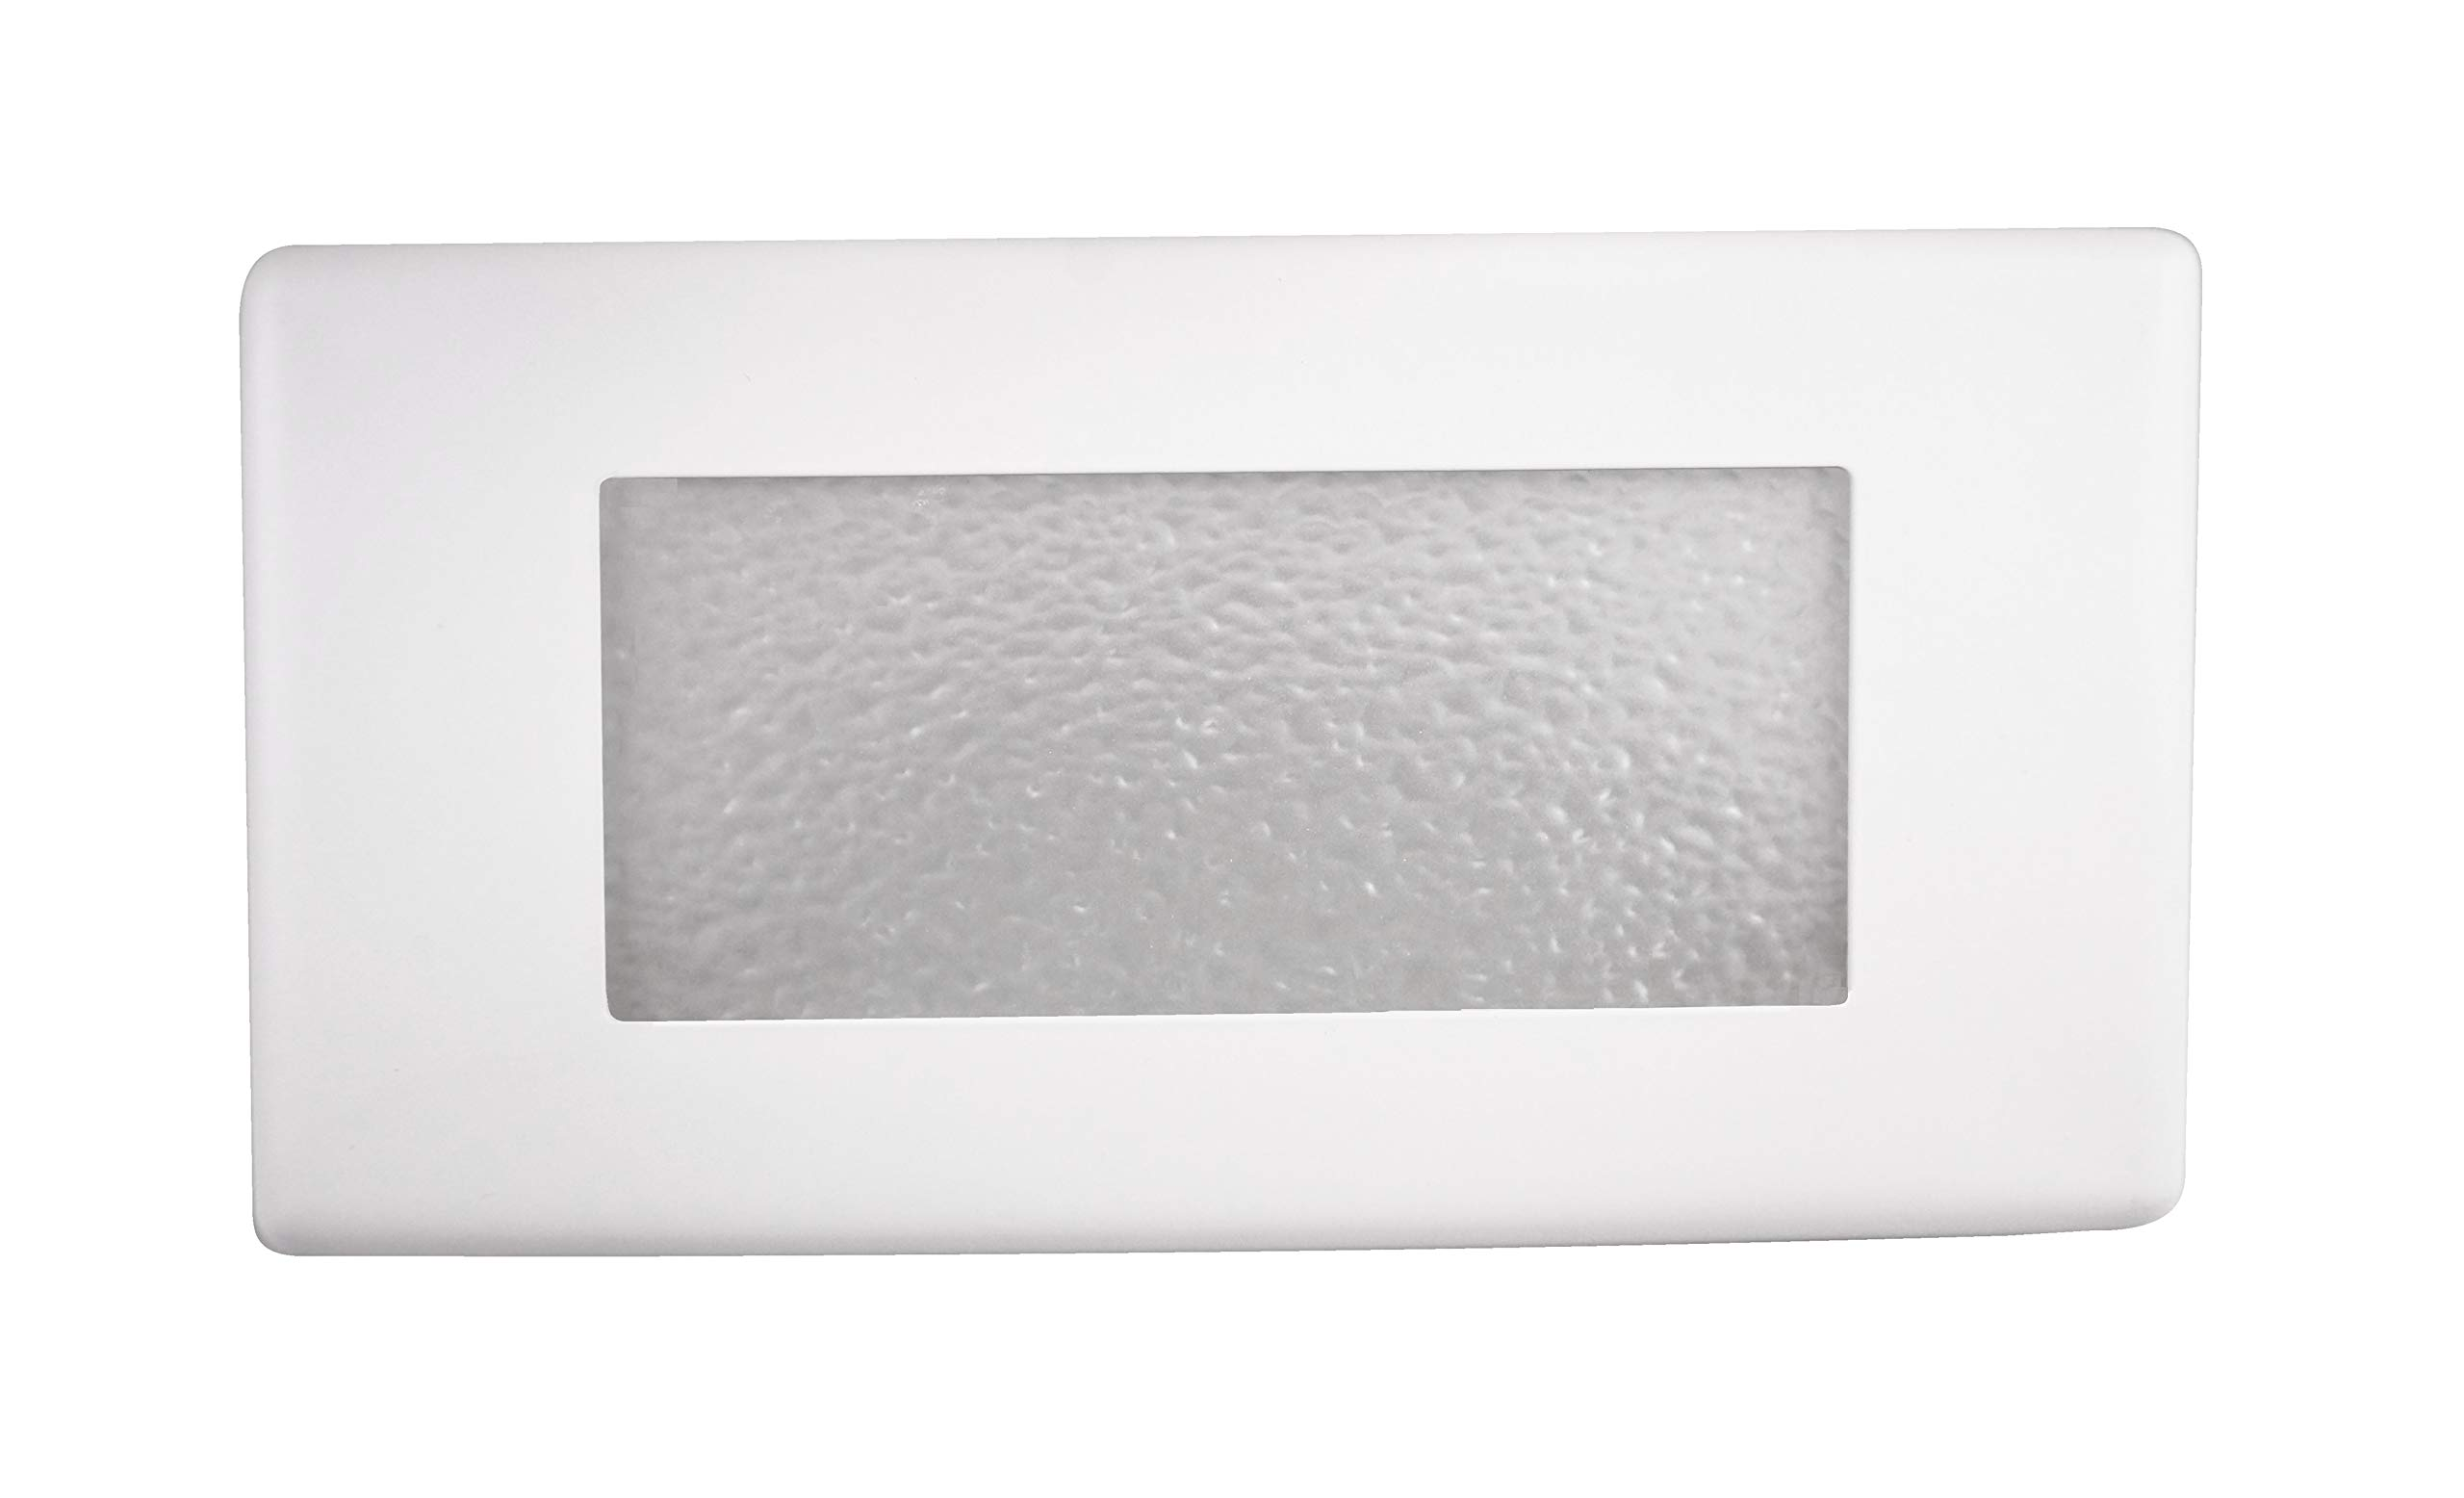 NICOR Lighting 10-Inch Textured Glass Recessed Step Lighting Faceplate Cover for 15803 LED Step Light (15812COVER)